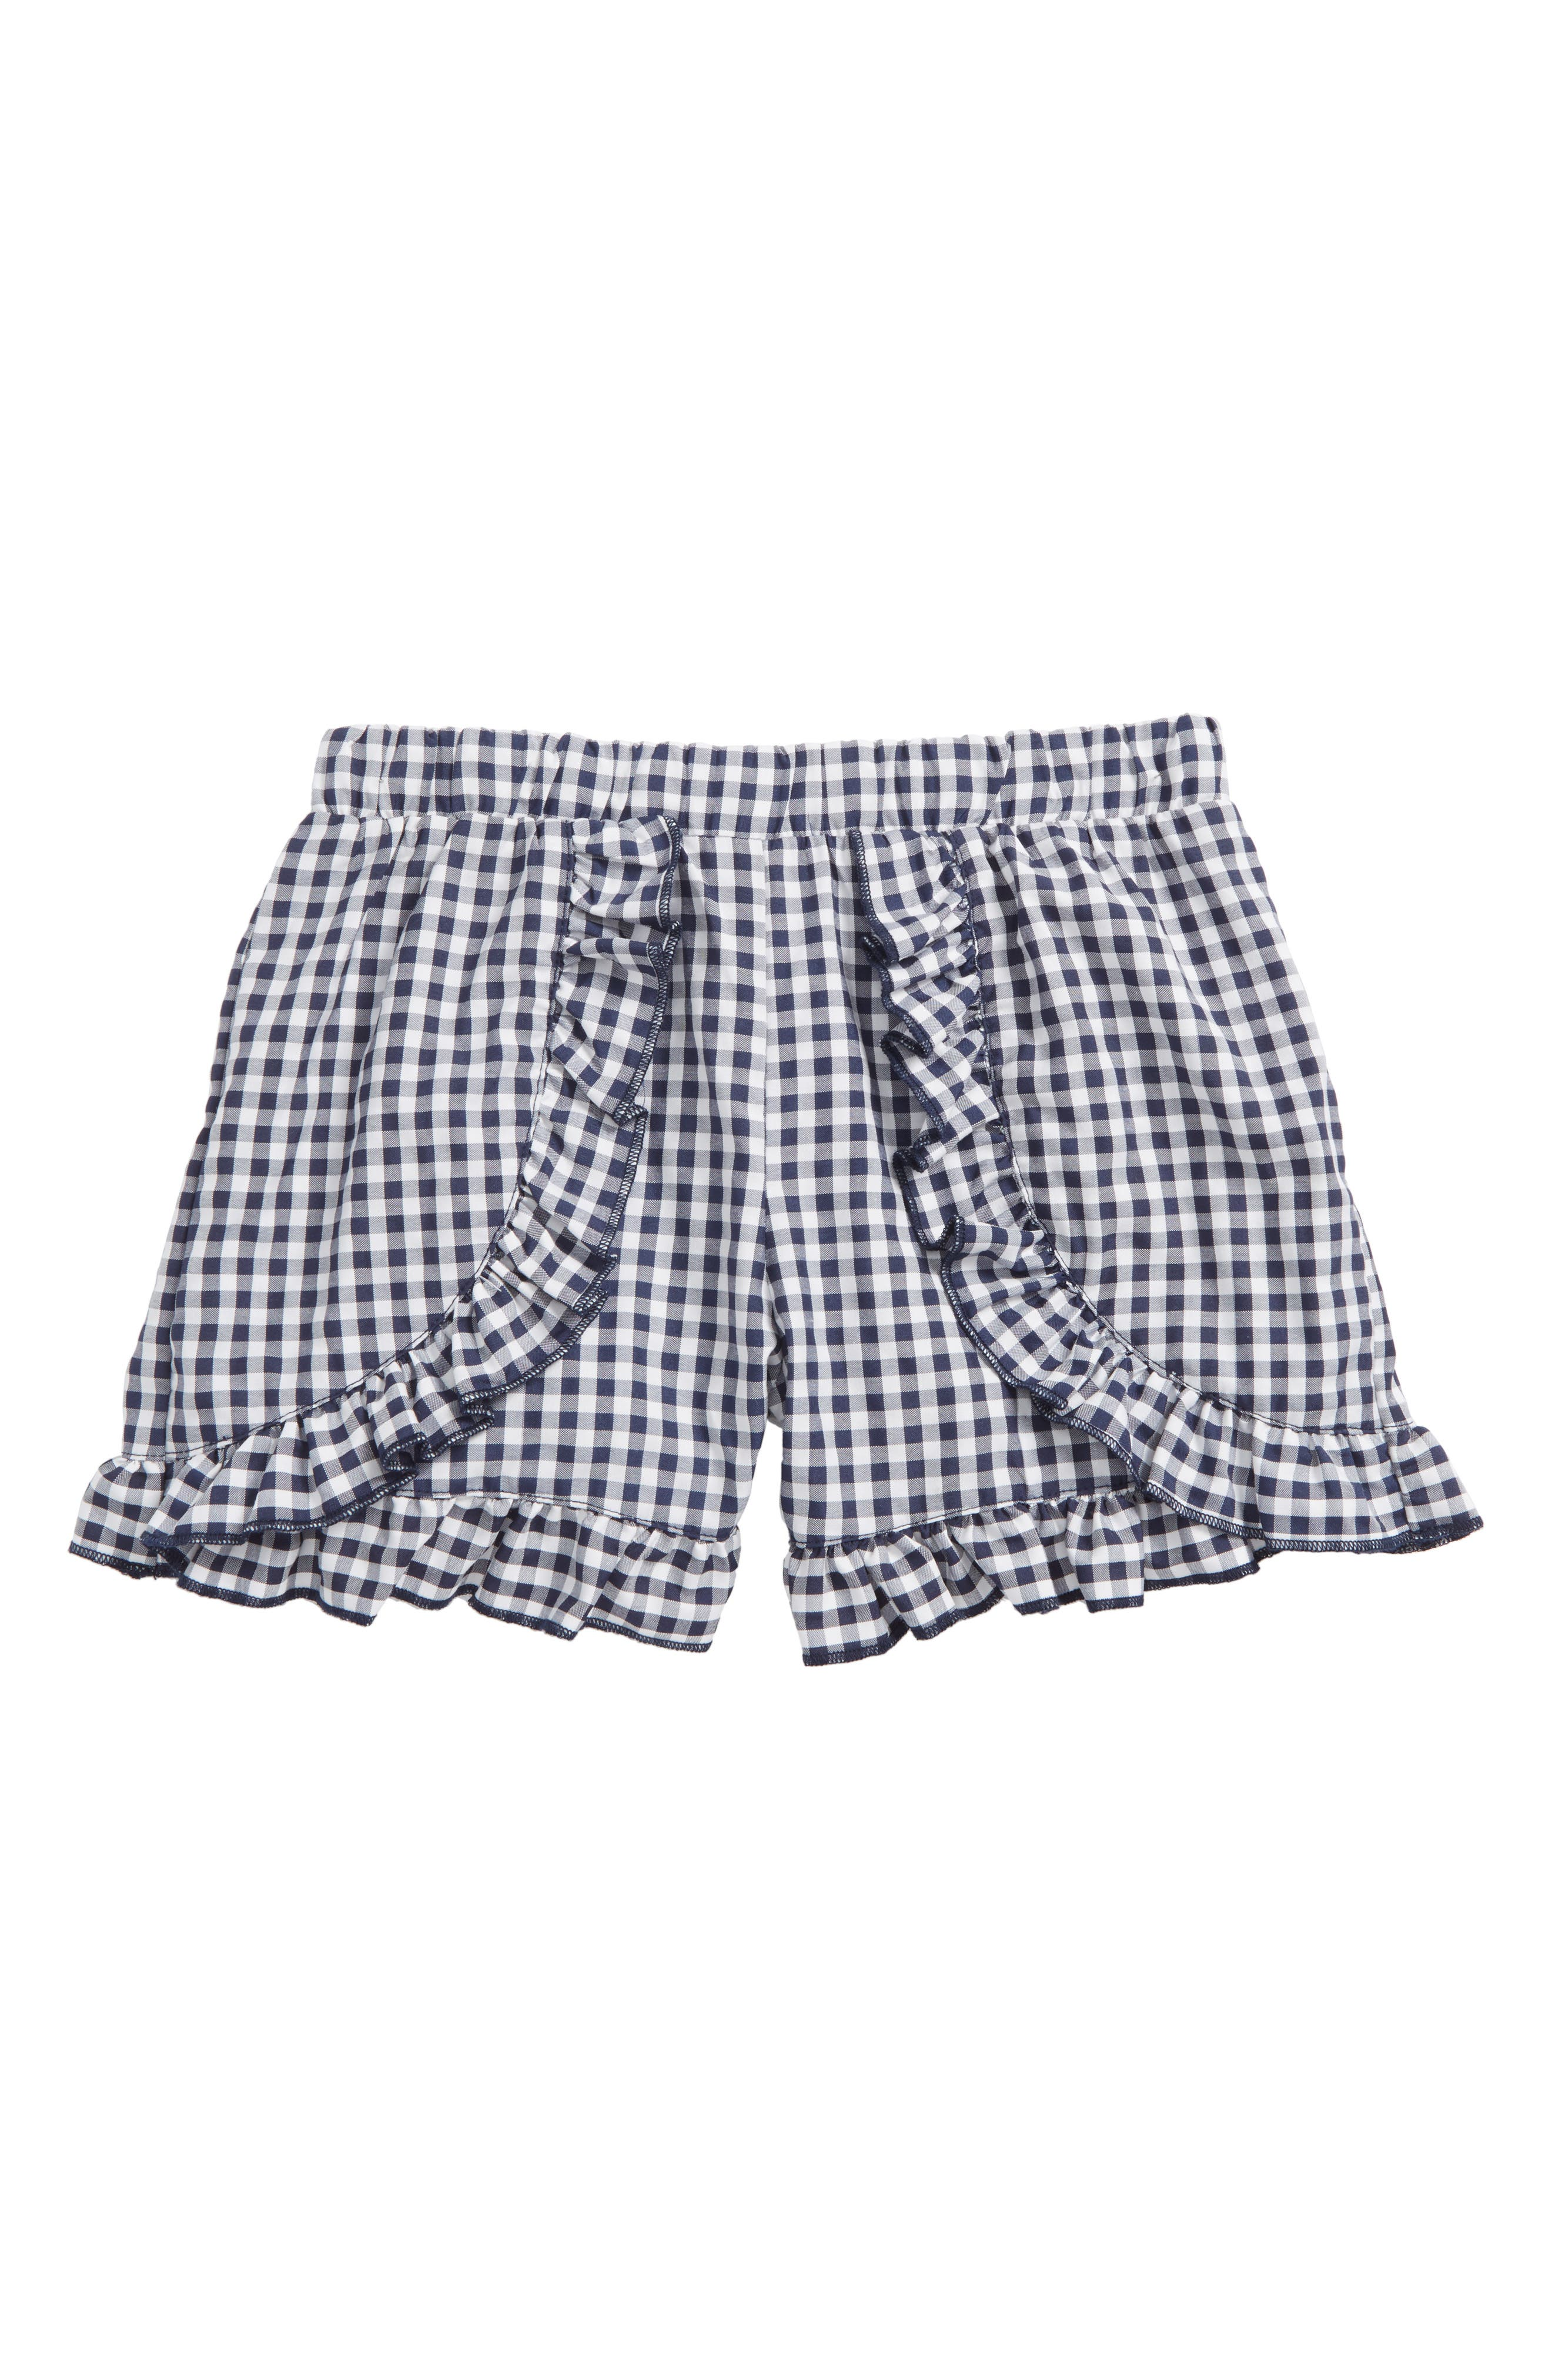 Ruffle Gingham Shorts,                         Main,                         color, 417